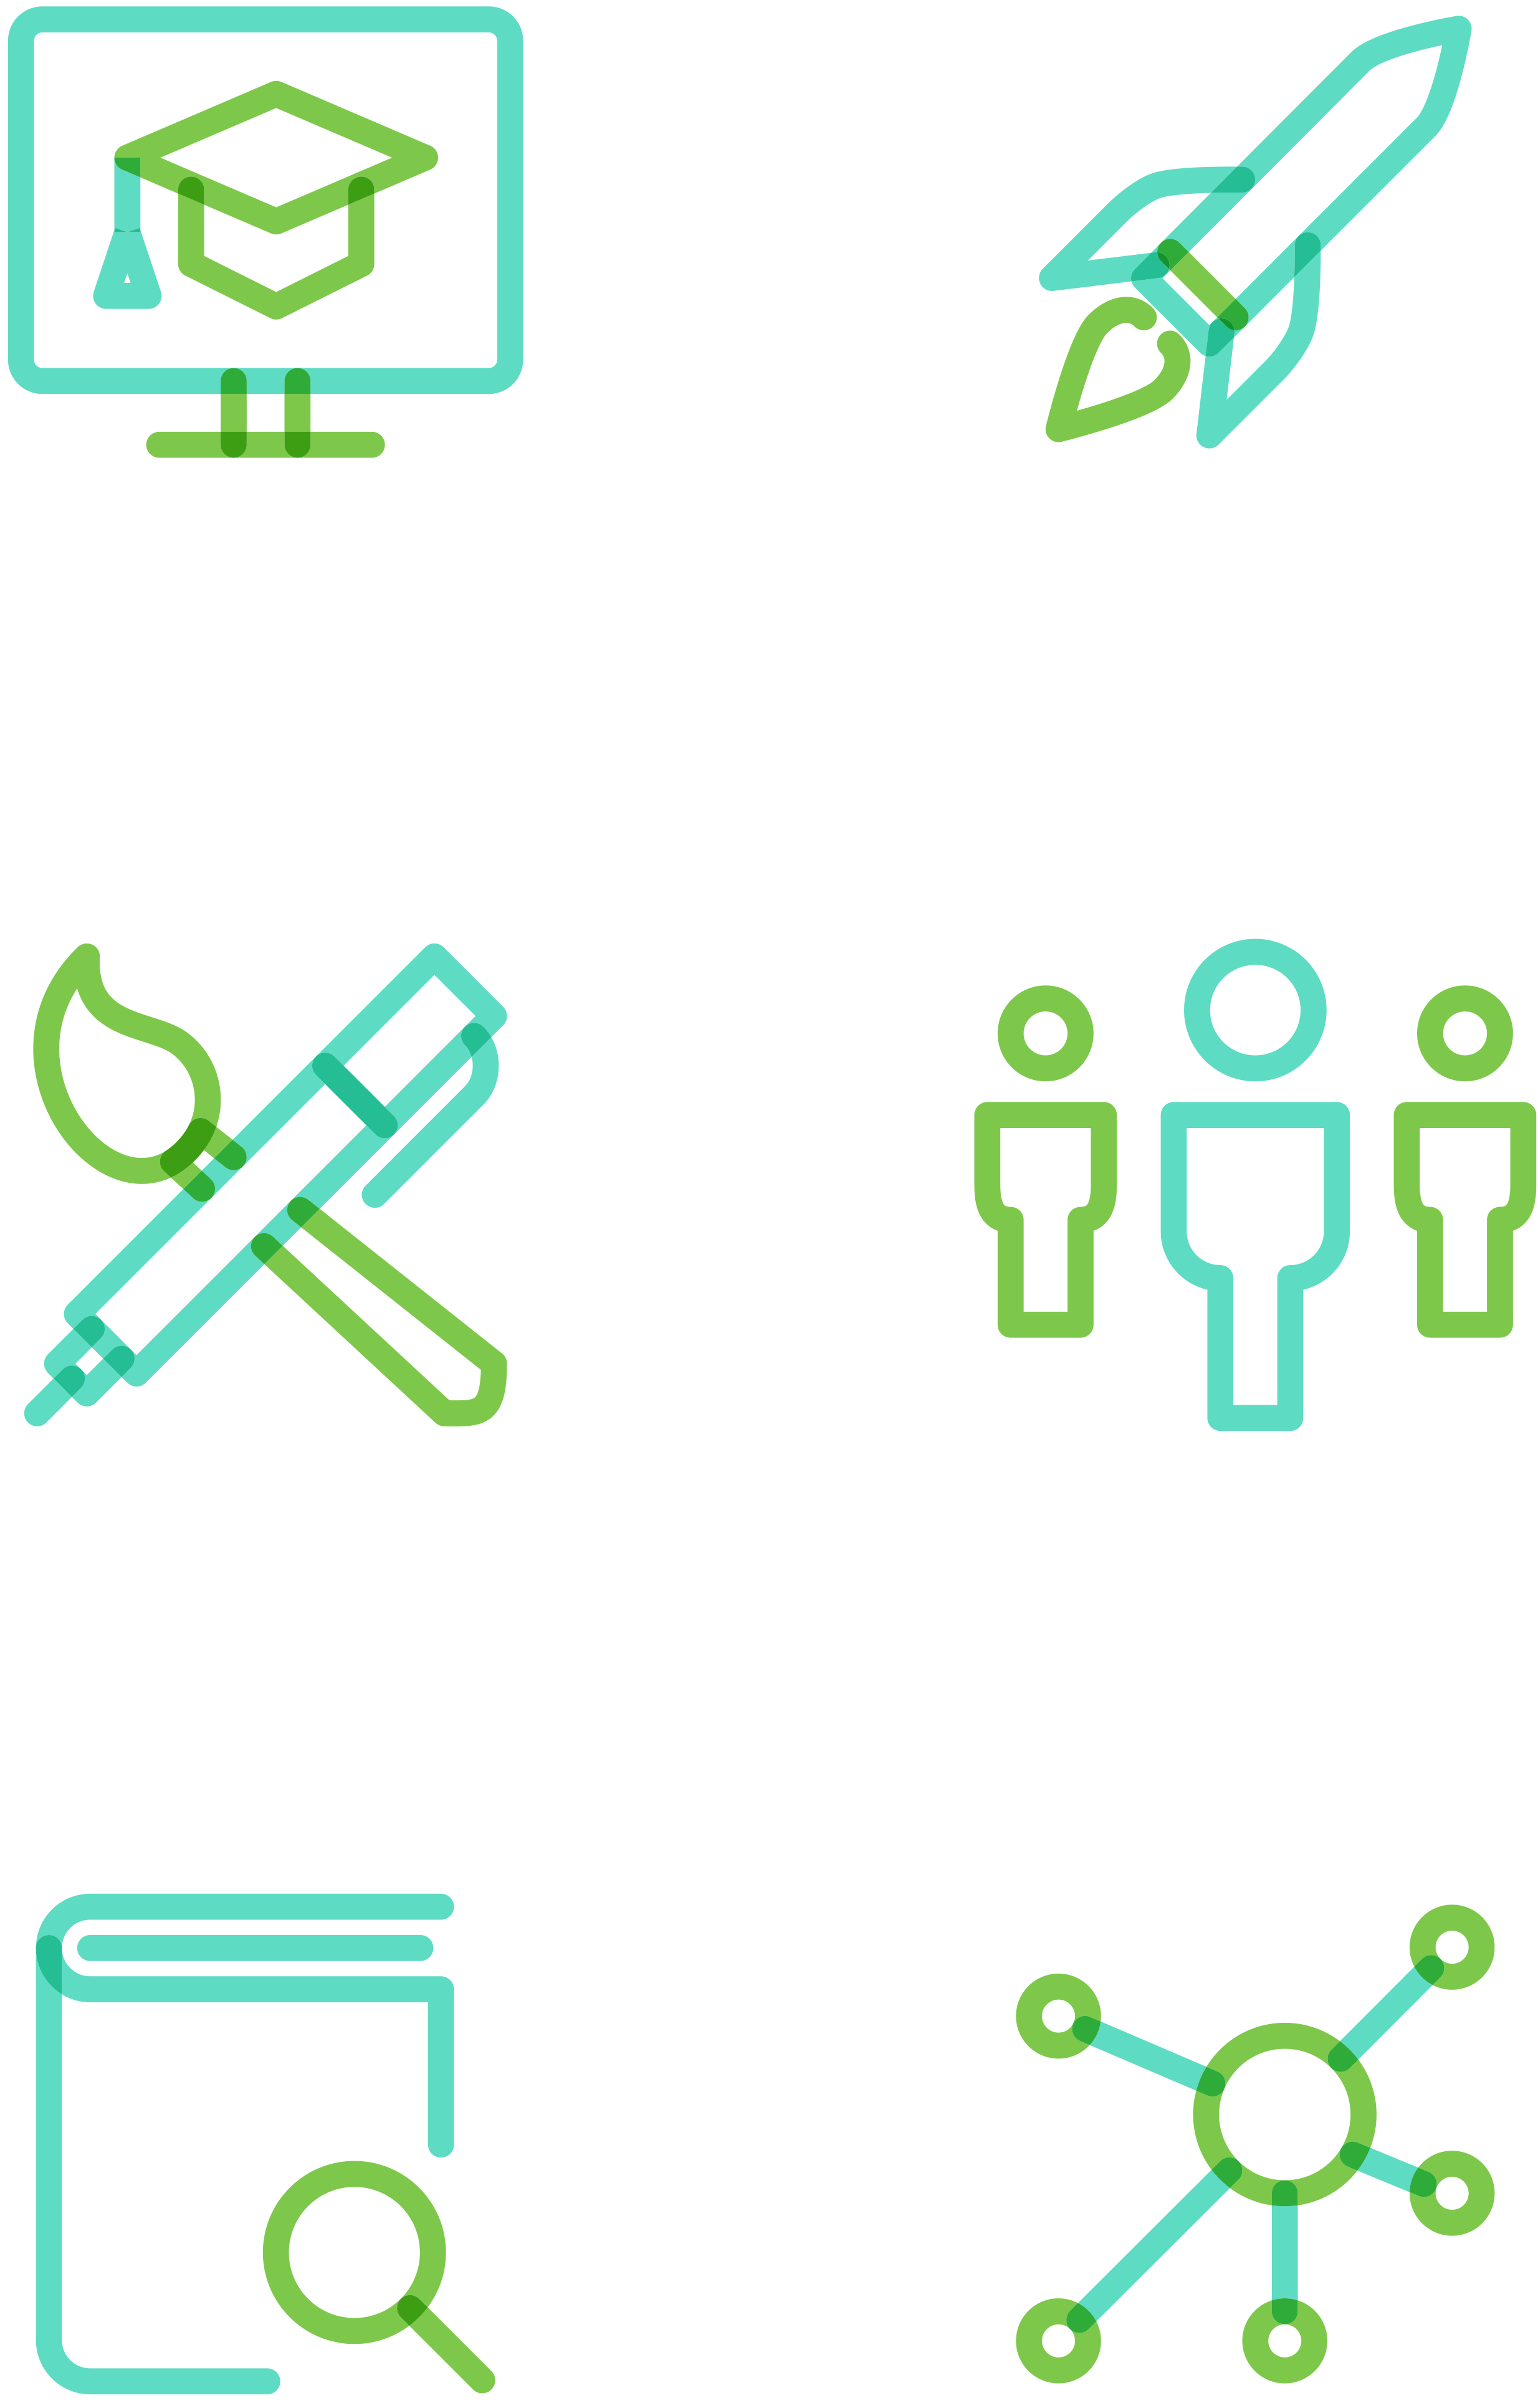 An ownable icon system was created by overlapping green and teal interchangeably.